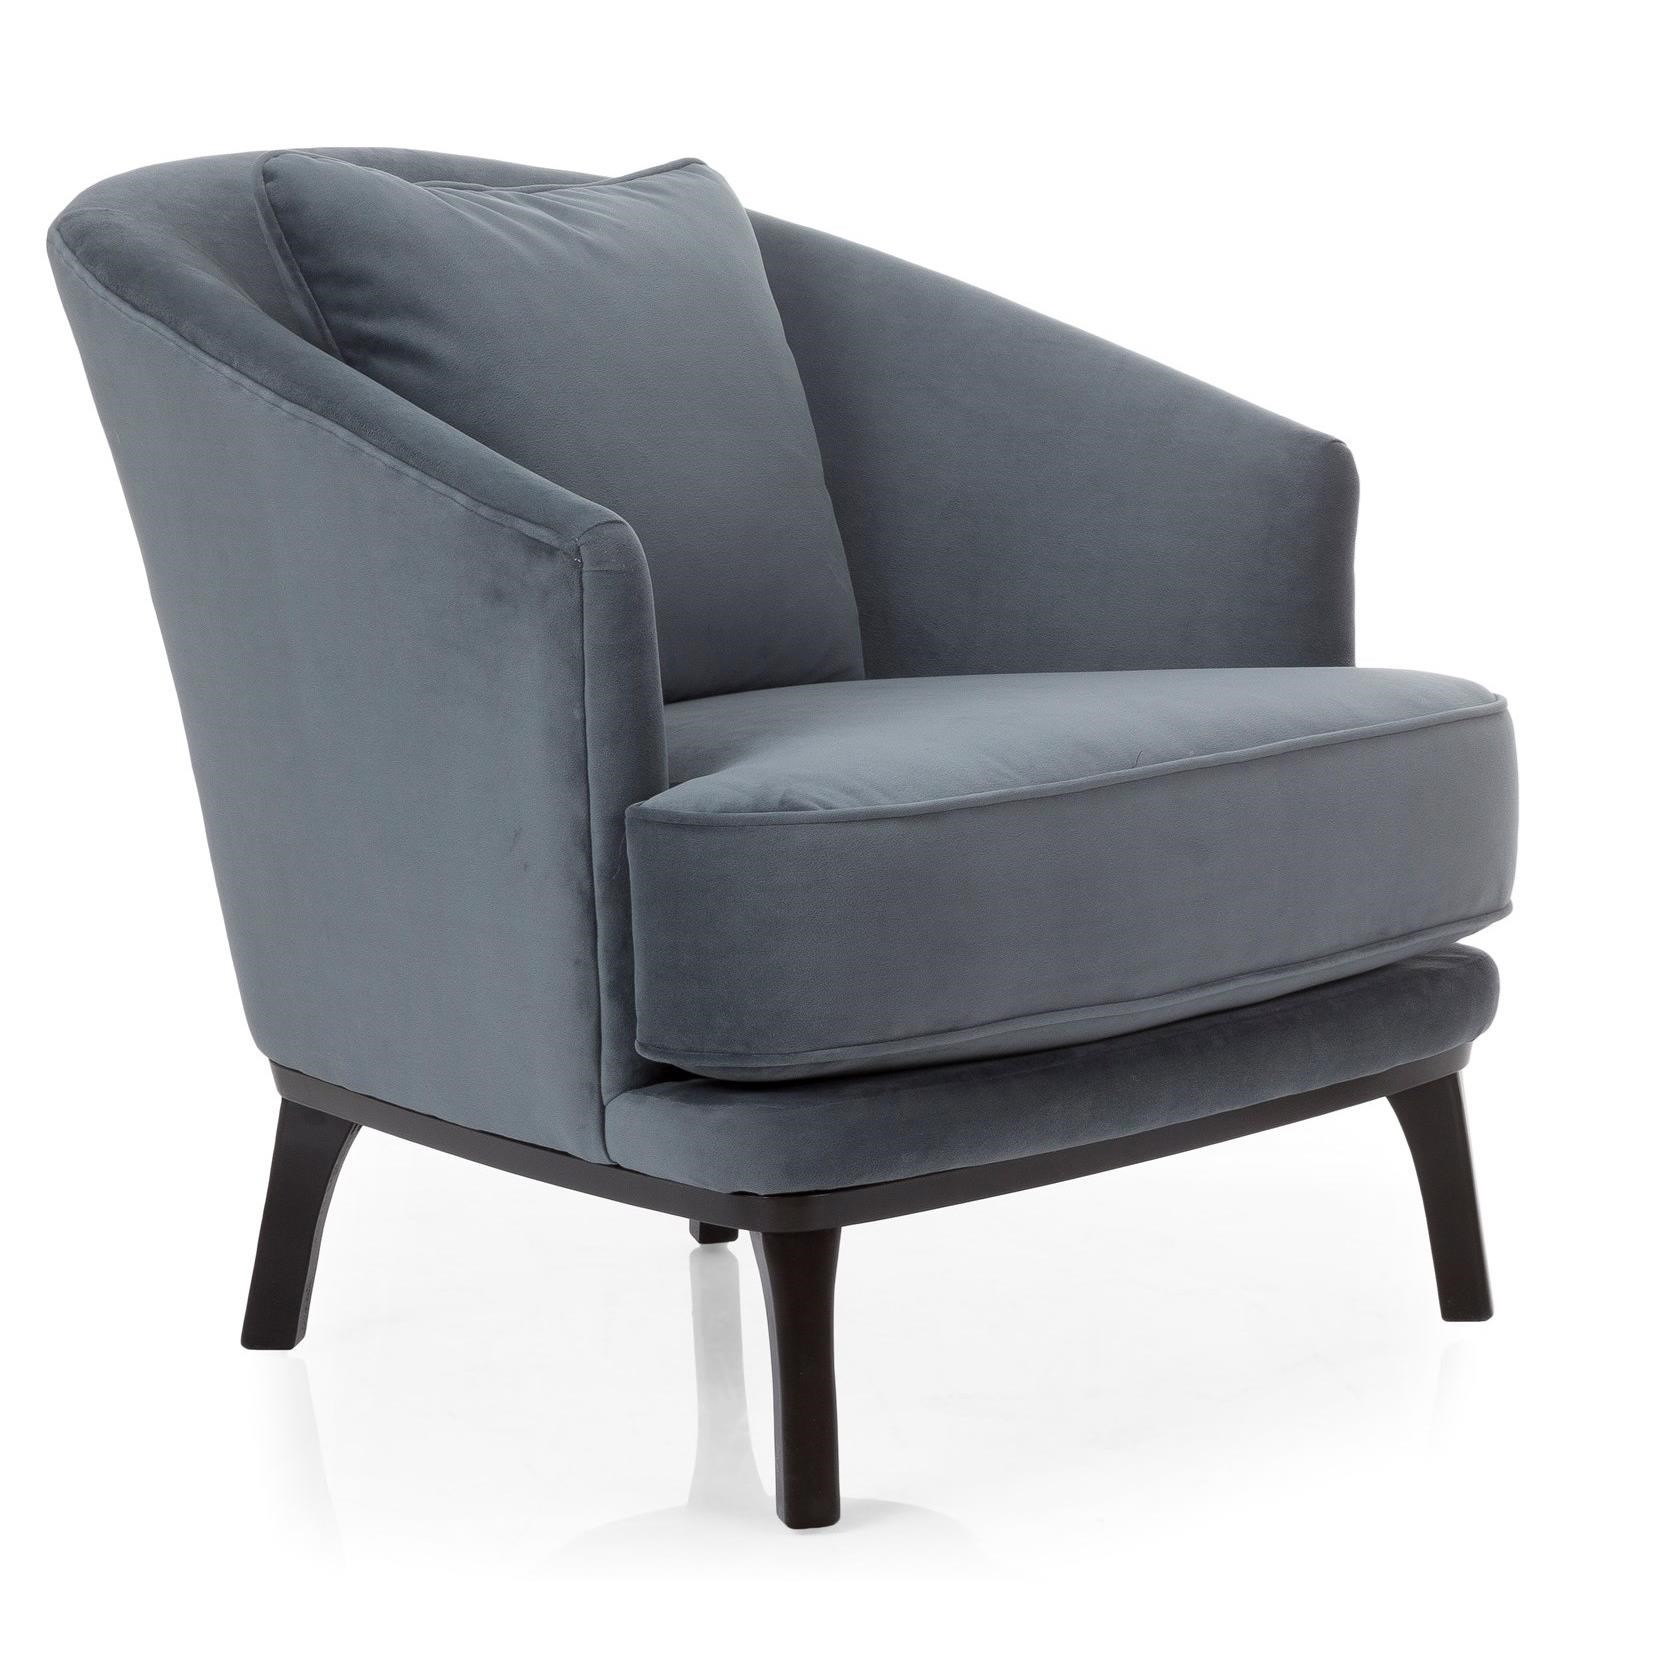 2883 Chair by Decor-Rest at Johnny Janosik